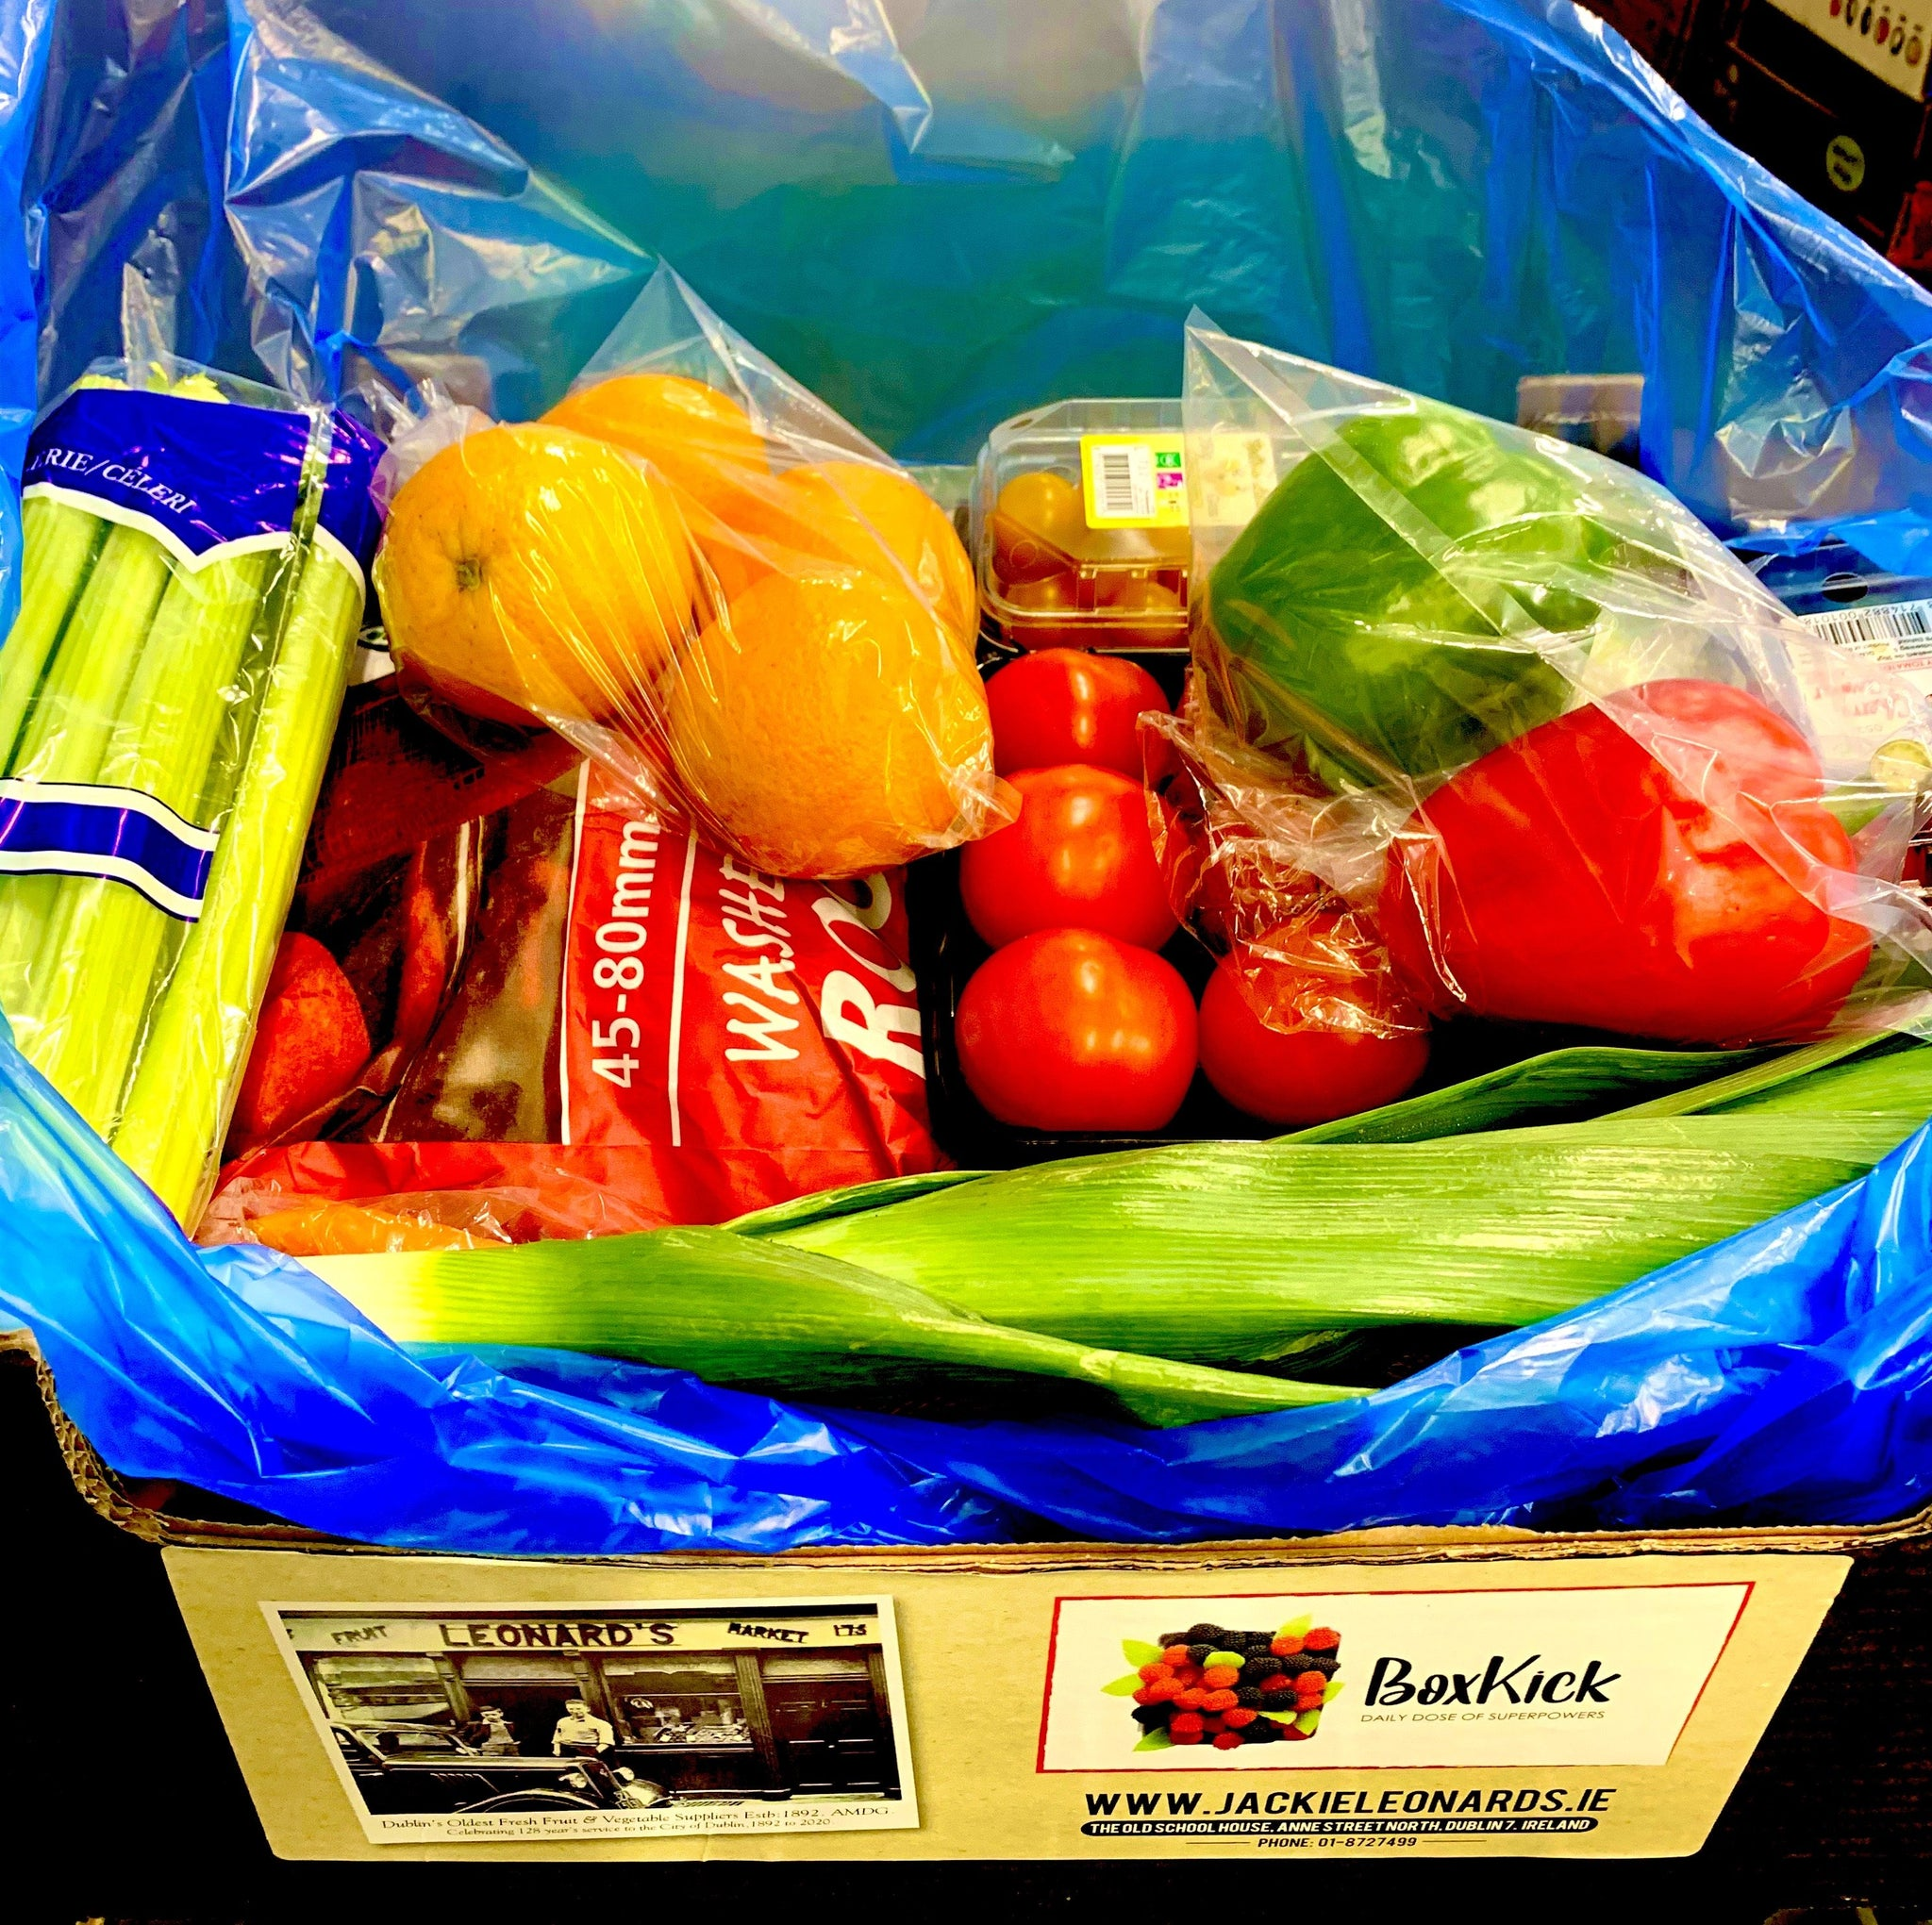 Medium Vegetable Box (Serves 4) - Jackie Leonards